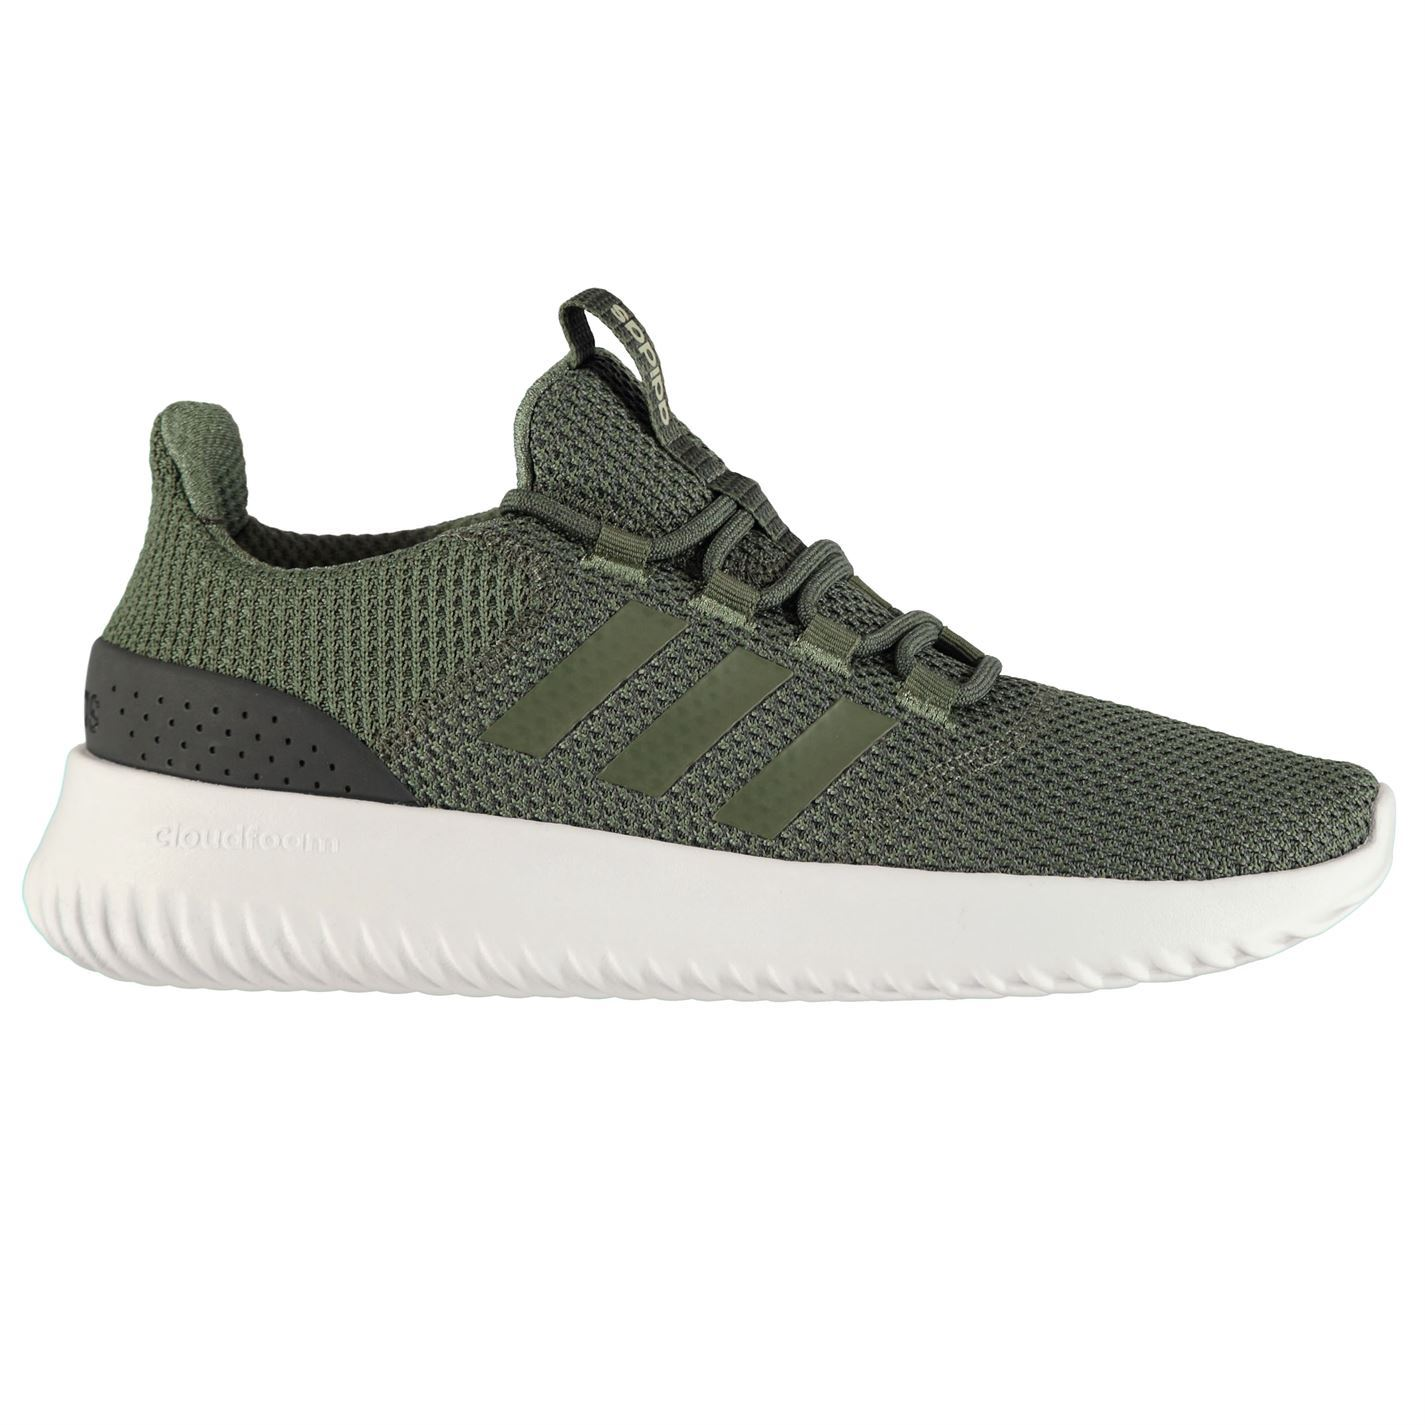 Details about adidas CloudFoam Kaptur Mens Trainers Shoes Running Footwear Sneakers